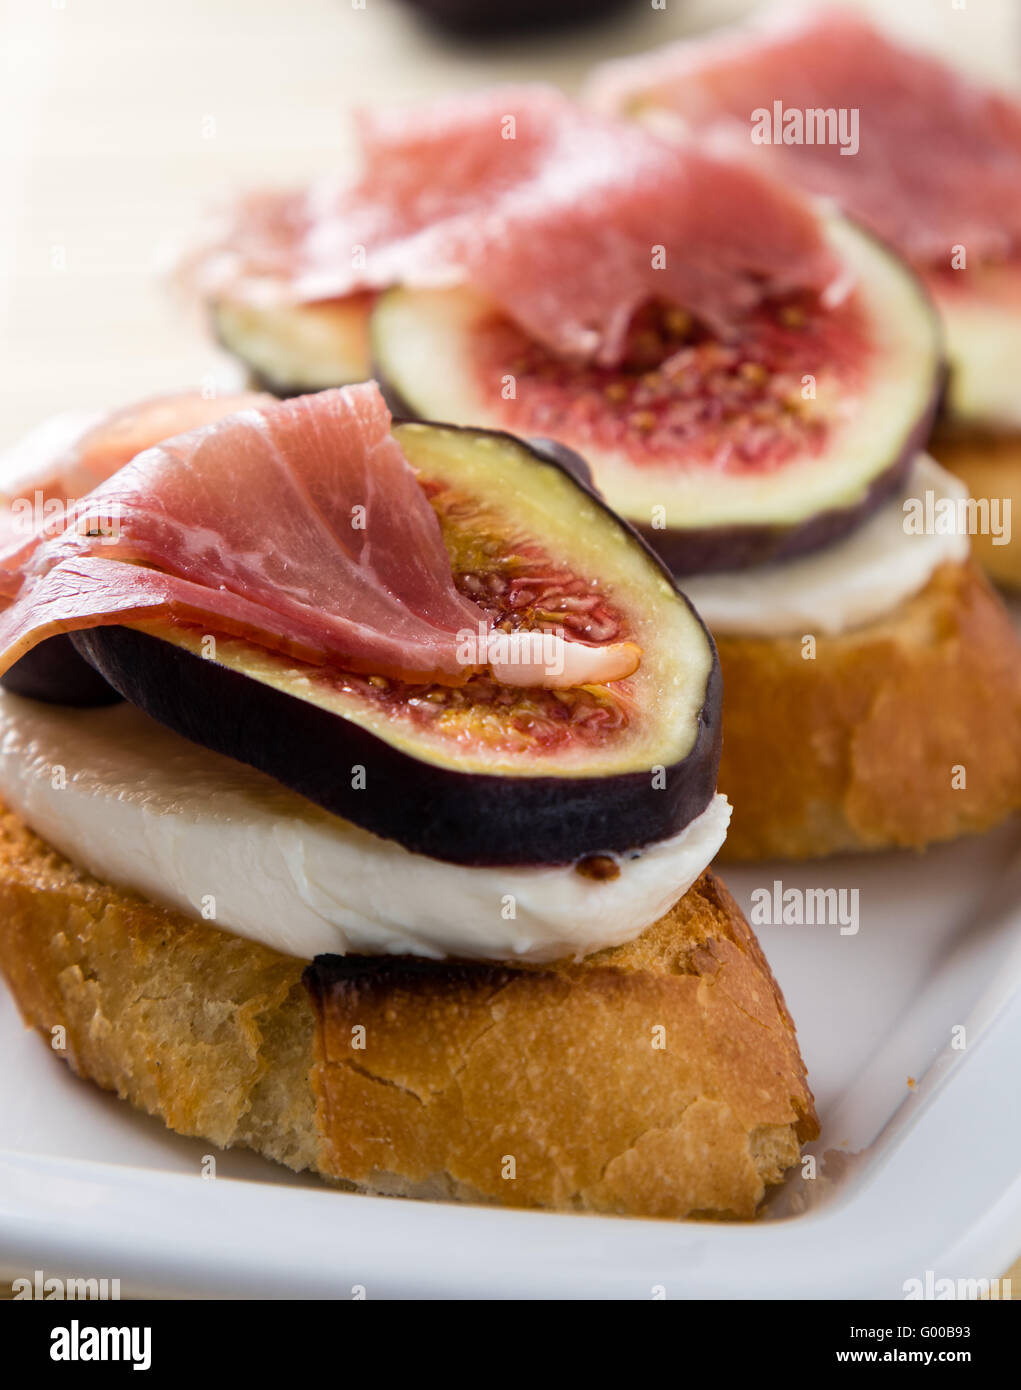 figs with cheese and prosciutto - Stock Image